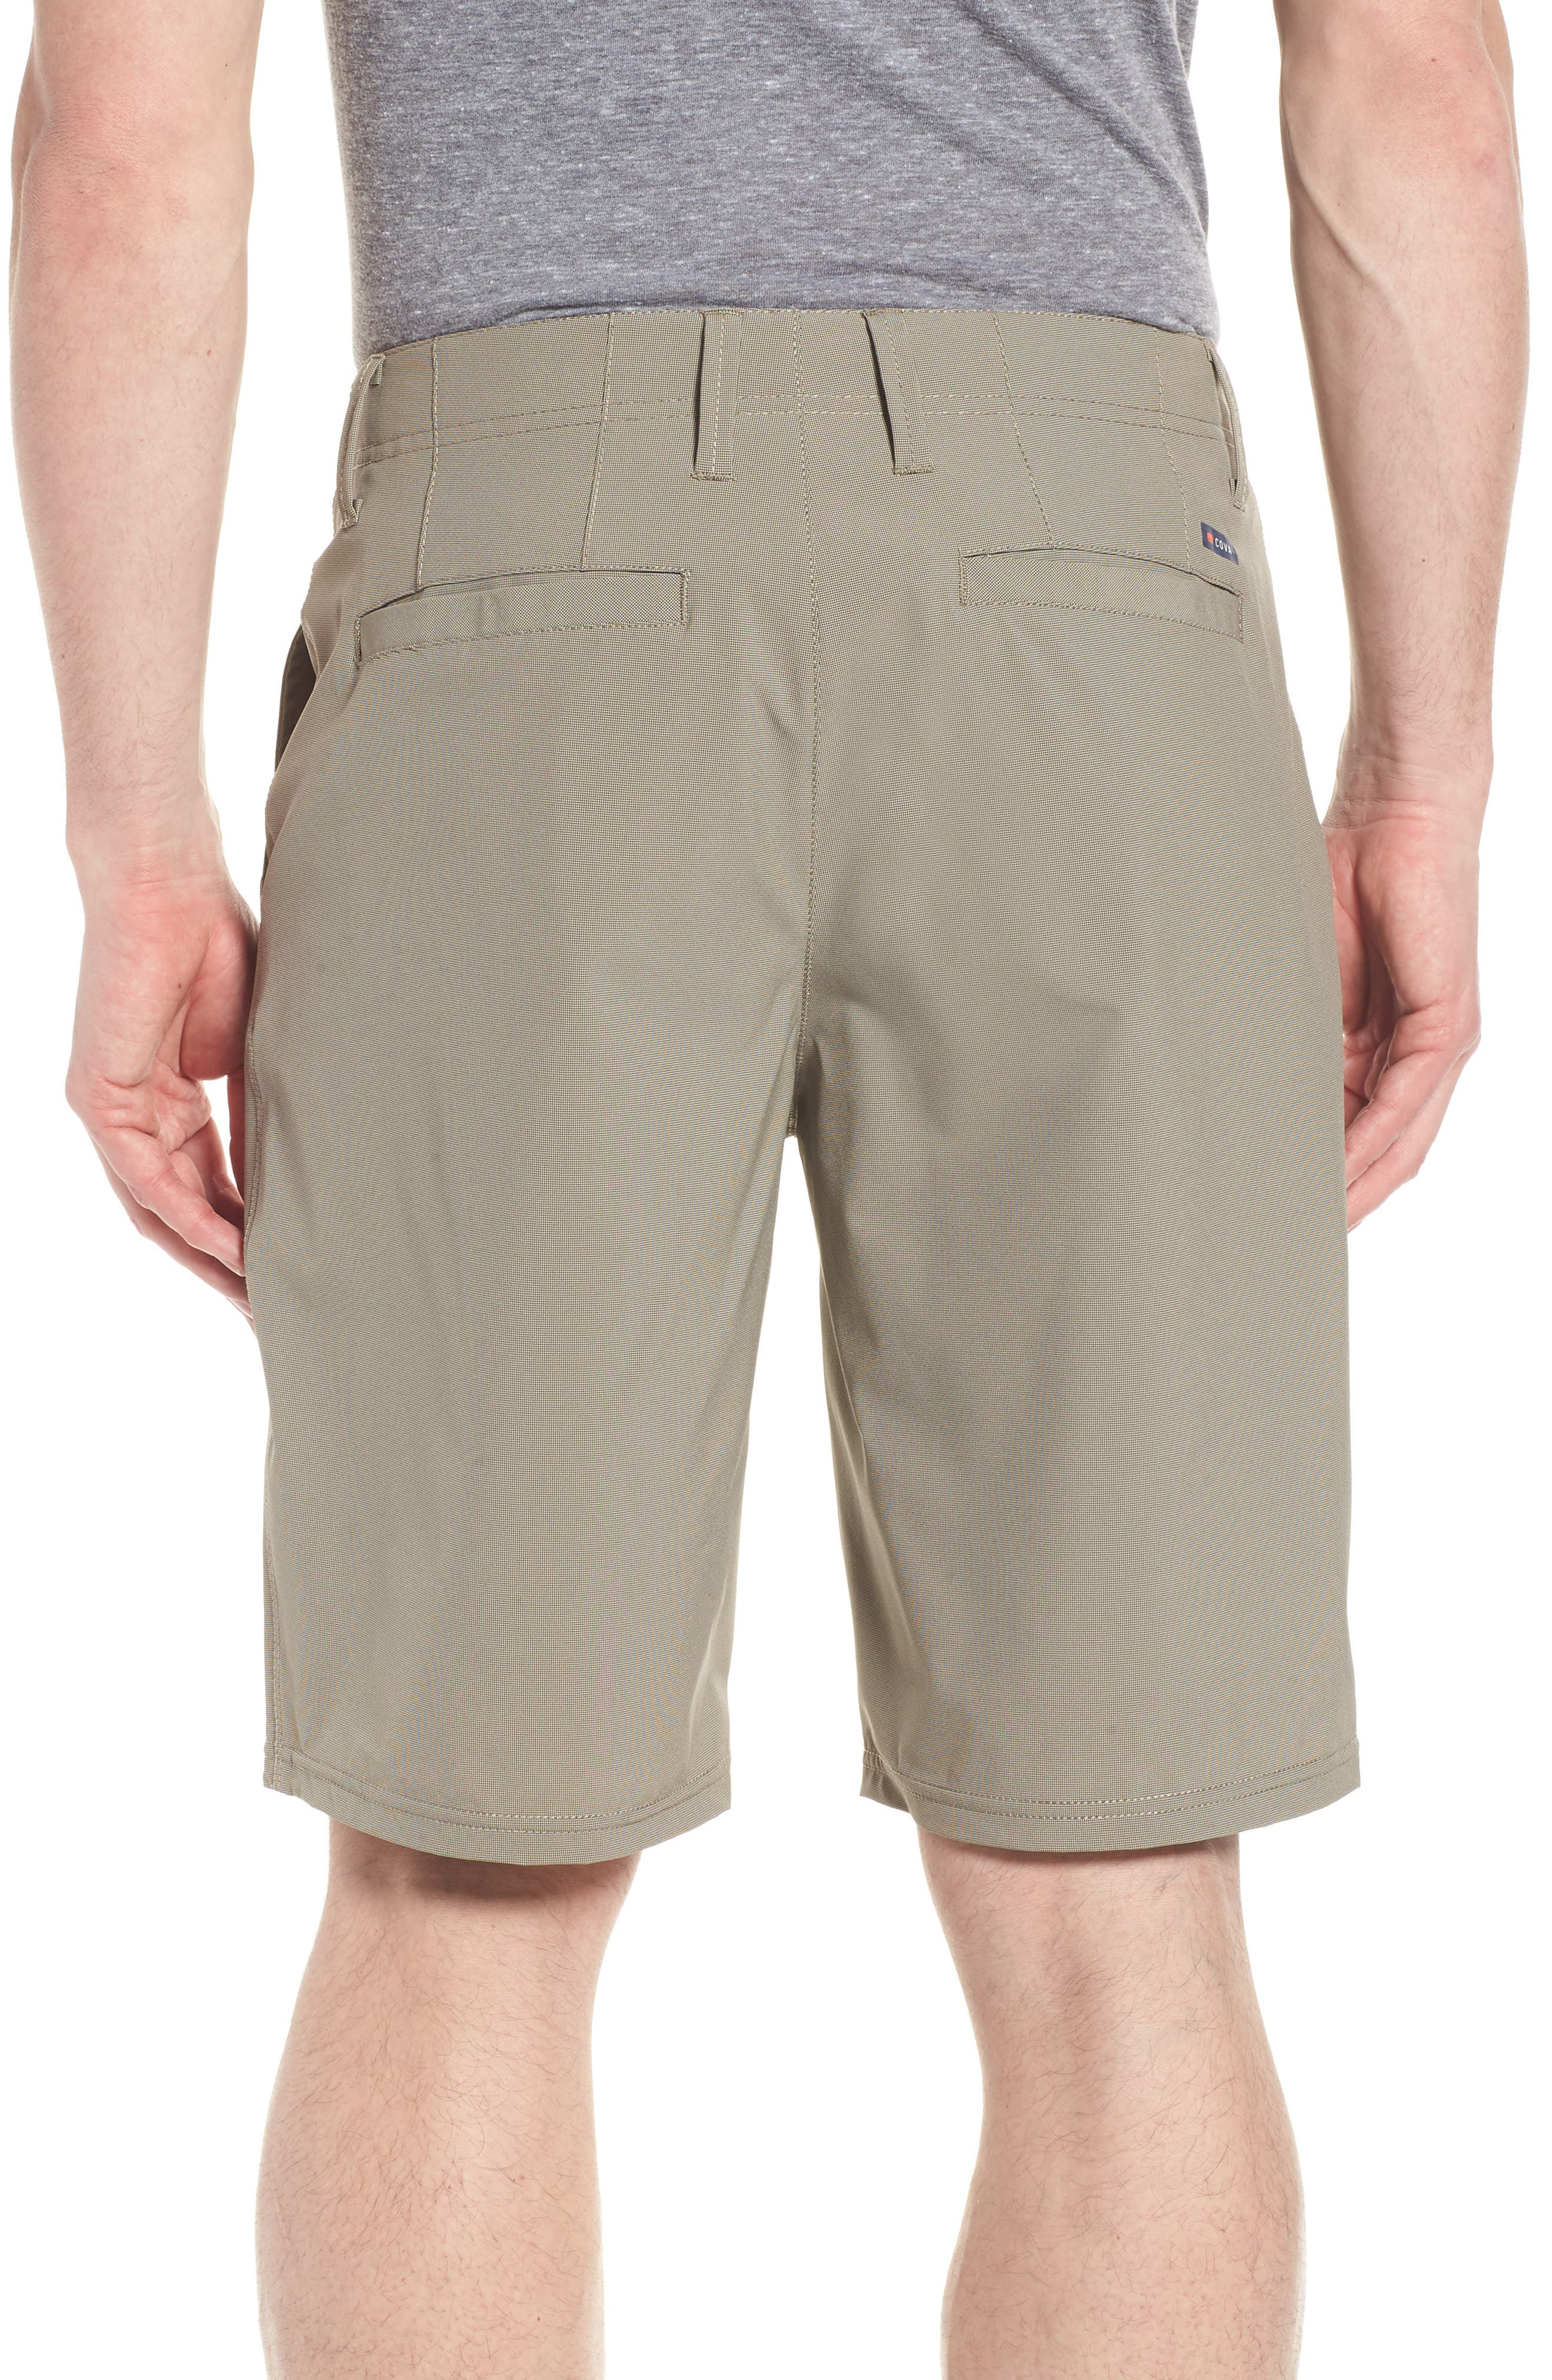 Seaside Hybrid Shorts,                             Alternate thumbnail 2, color,                             Espresso